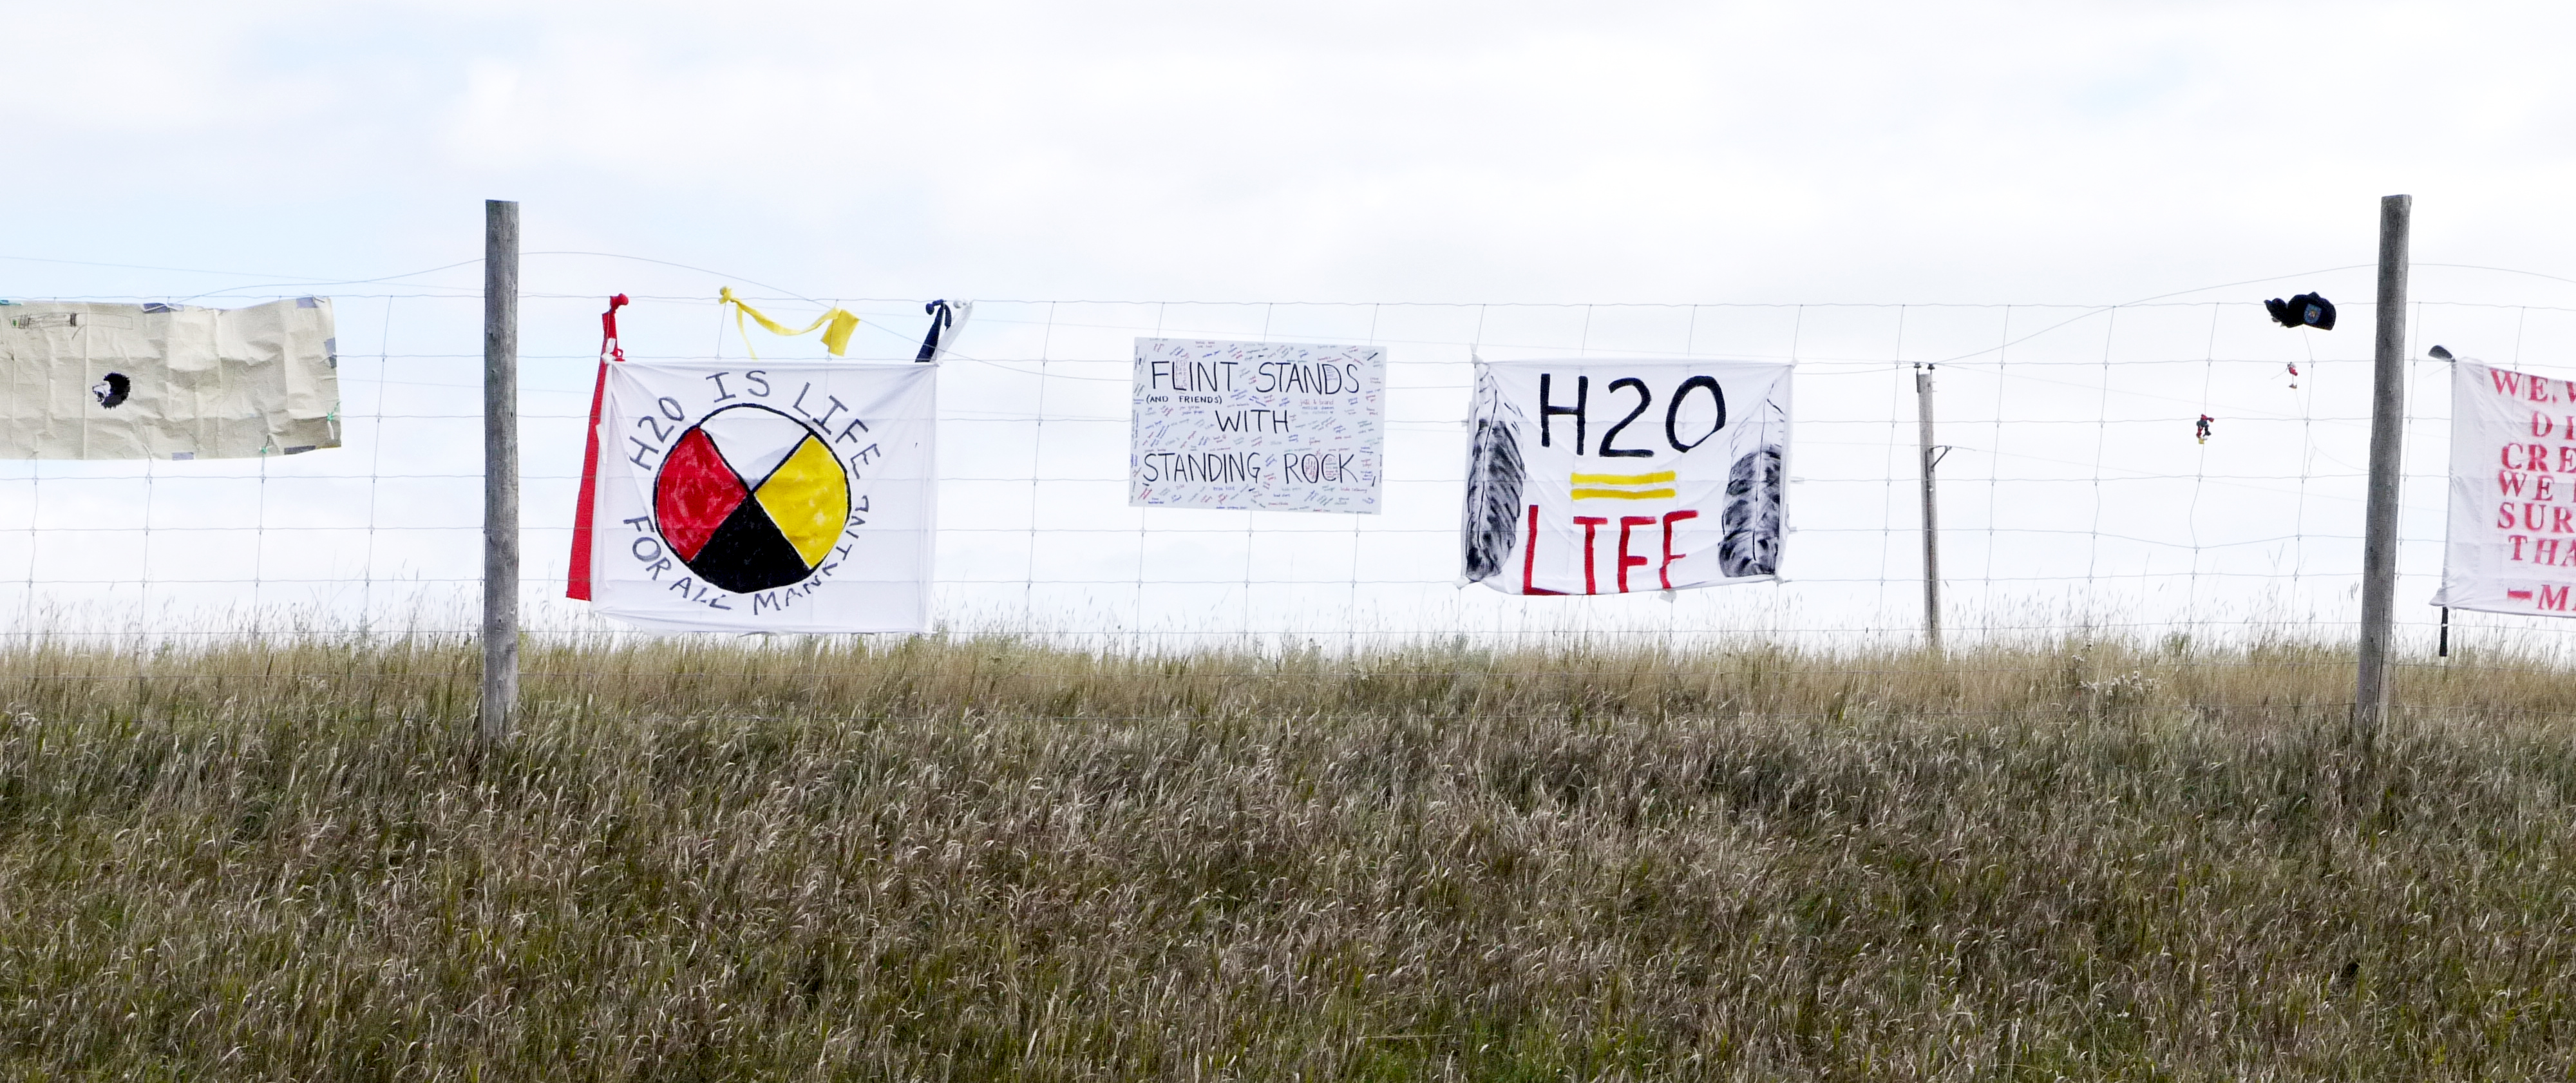 """A sign along the highway near the Dakota Access Pipeline construction site reads """"Flint Stands with Standing Rock."""" (Sarah Jaffe for BillMoyers.com)"""